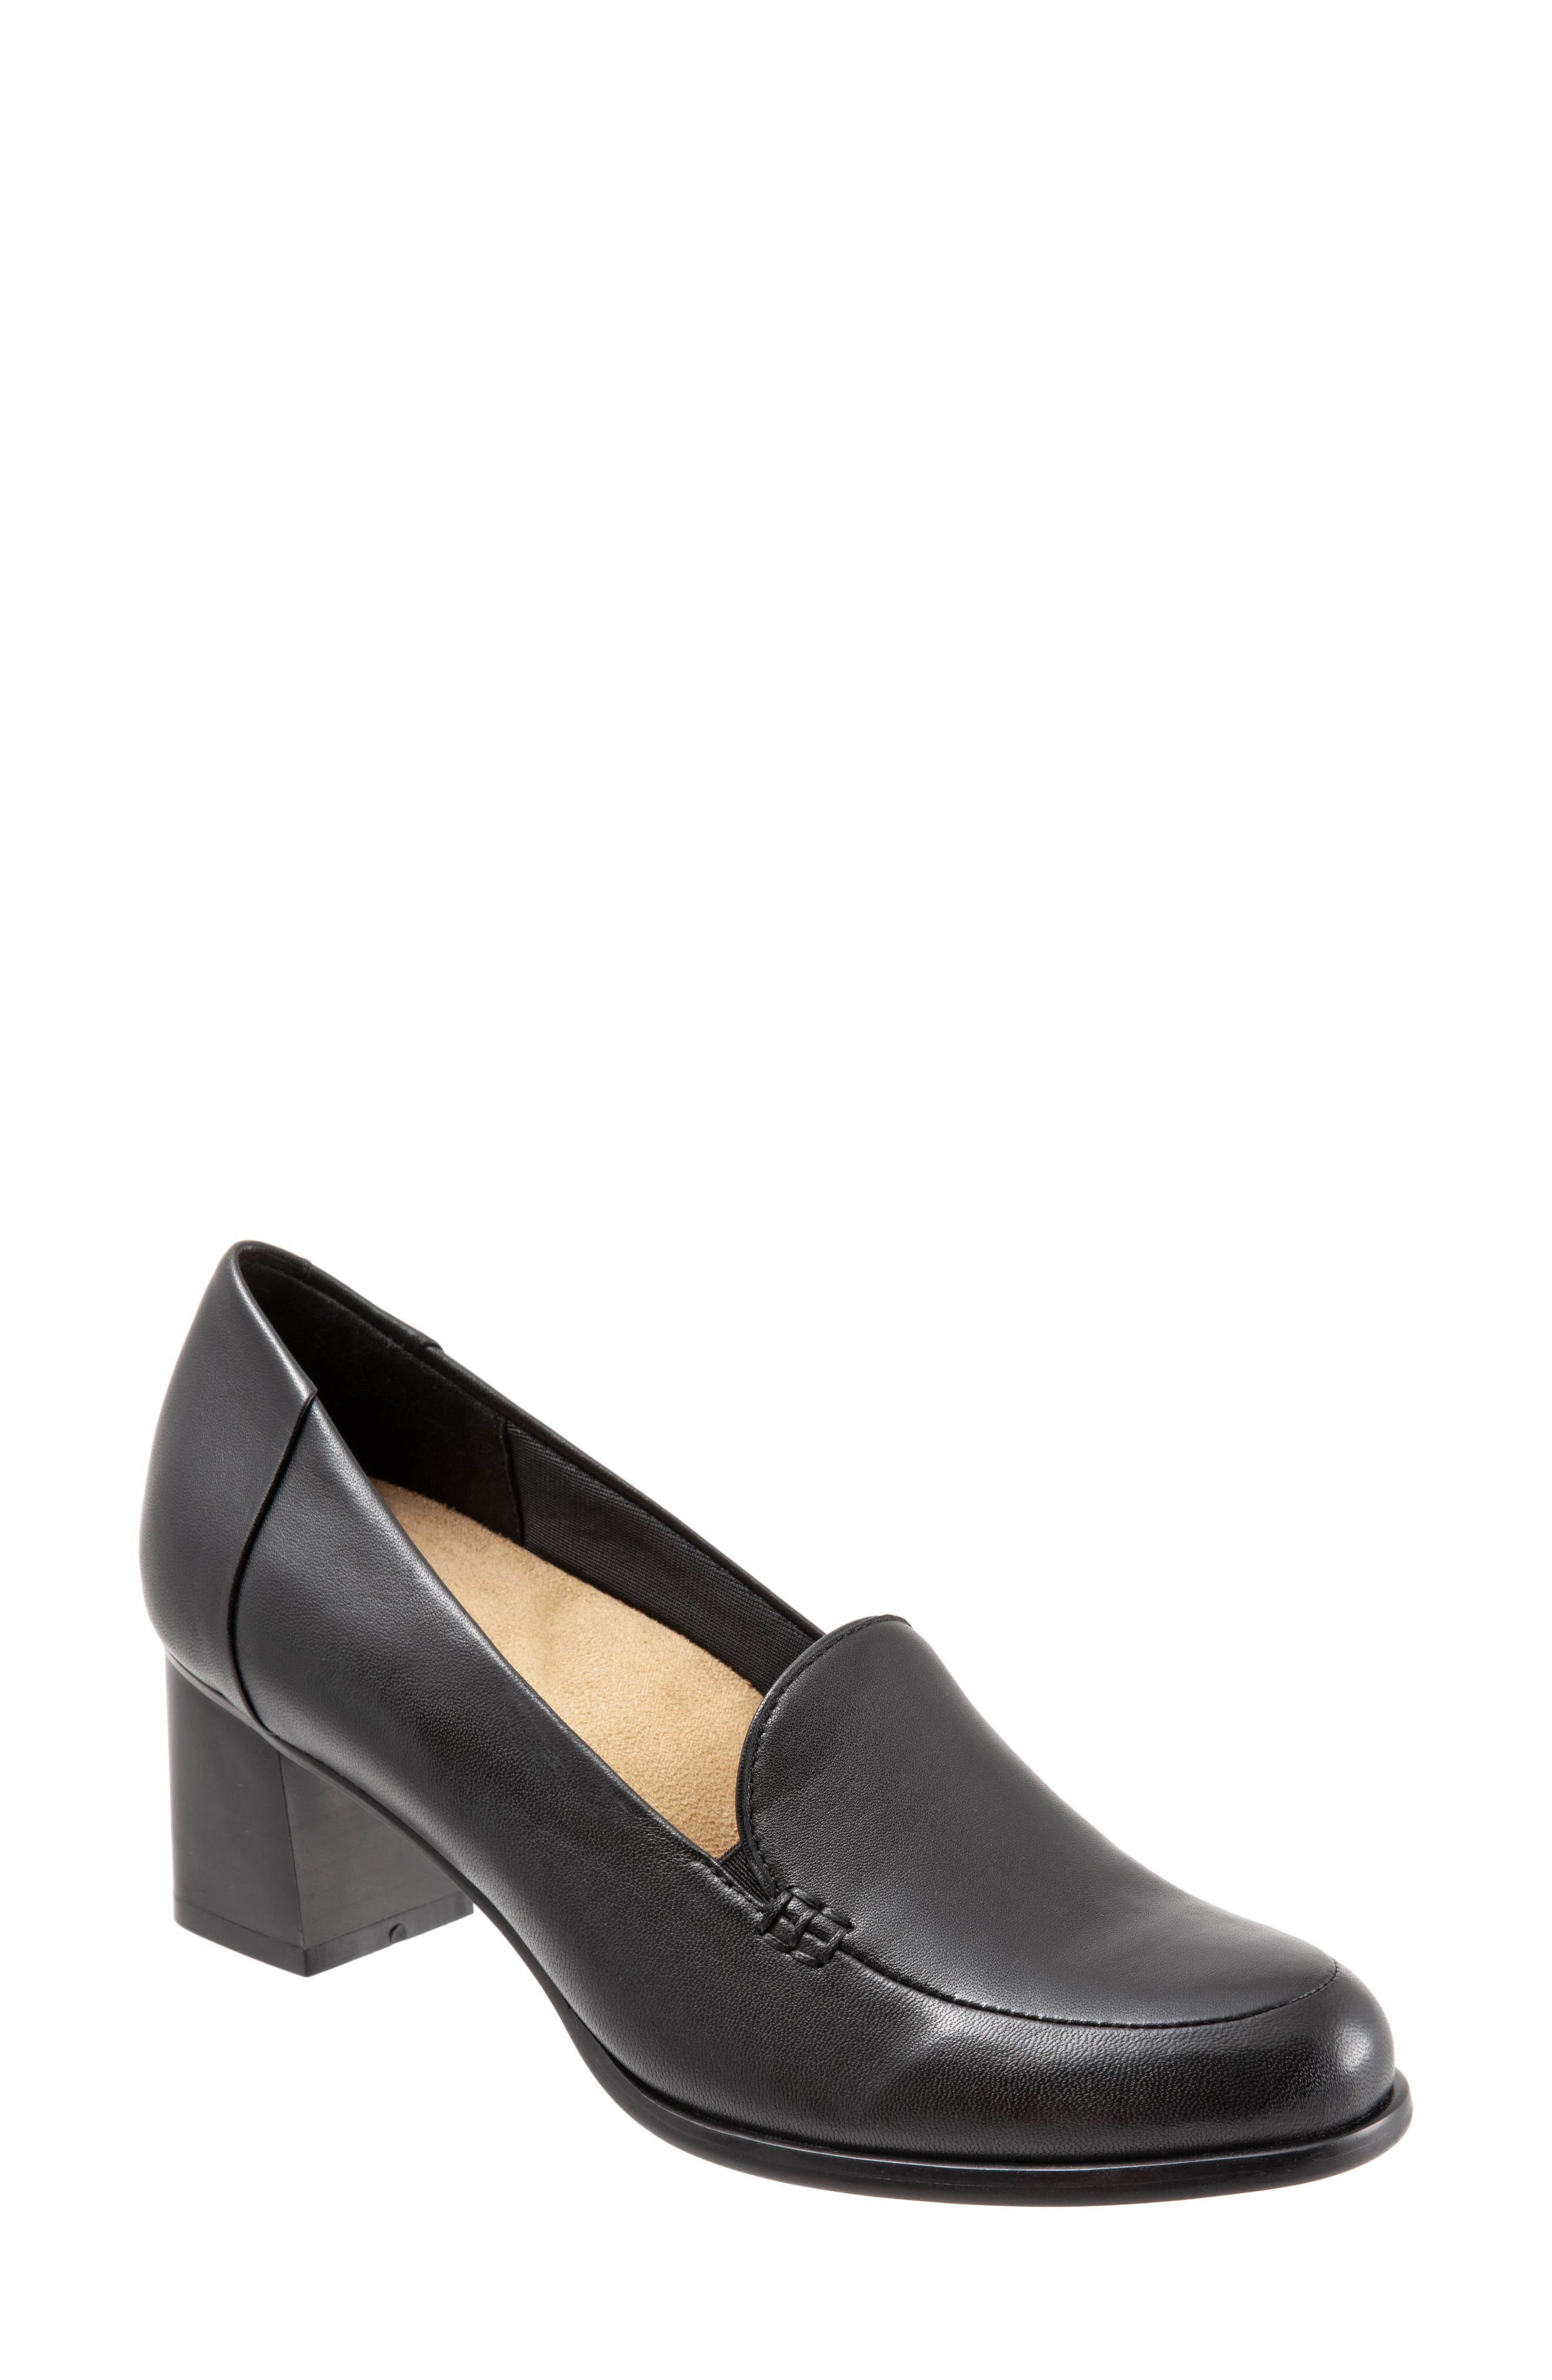 TROTTERS Quincy Loafer Pump, Main, color, BLACK LEATHER